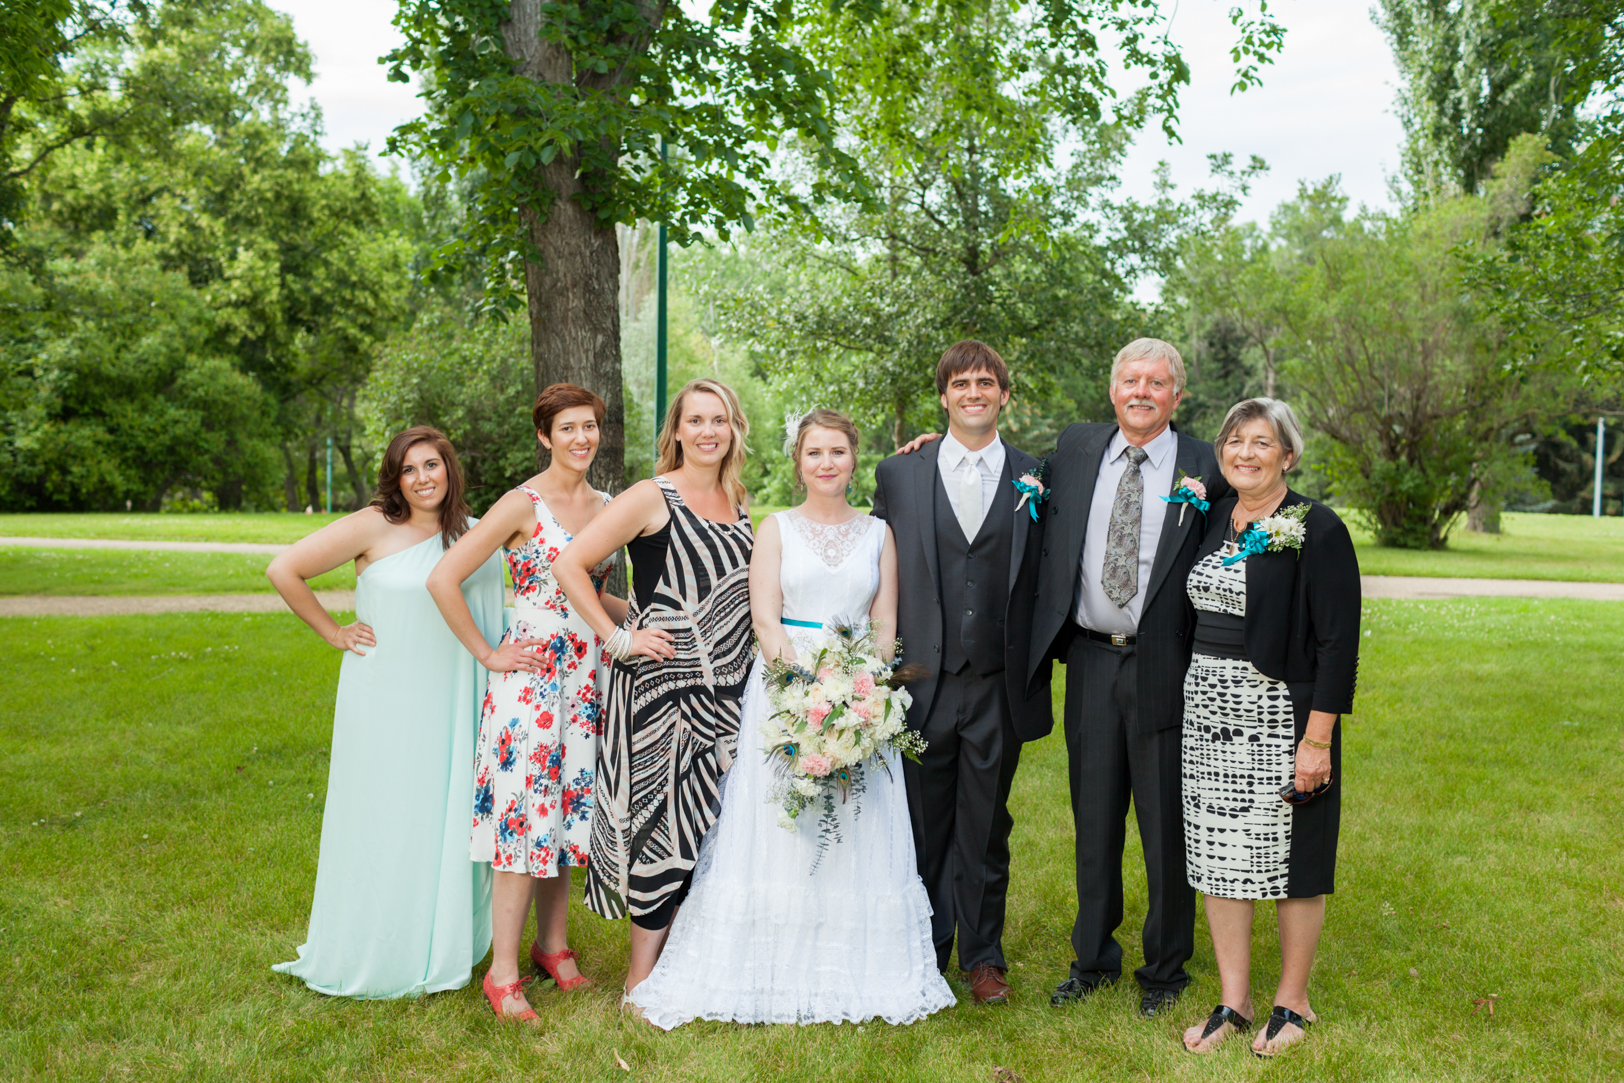 Family Photos for Wedding